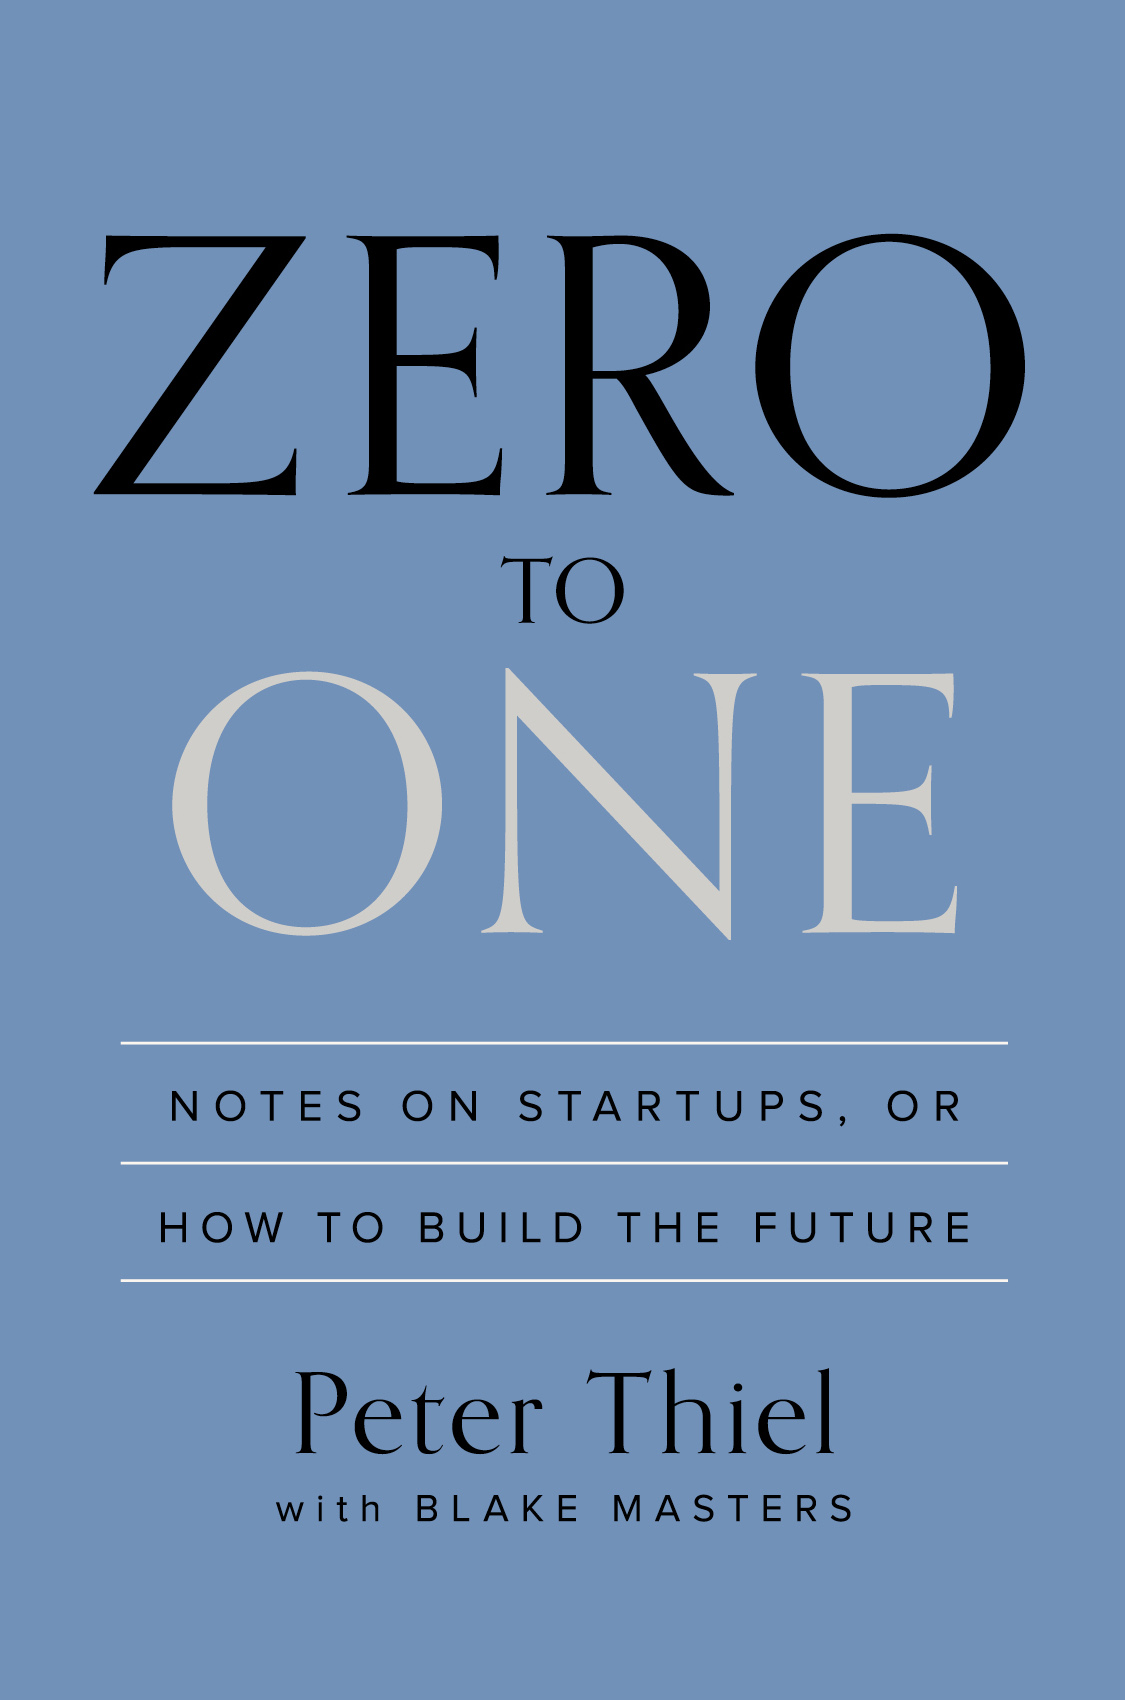 ZERO TO ONE, BY PETER THIEL, Book Summary